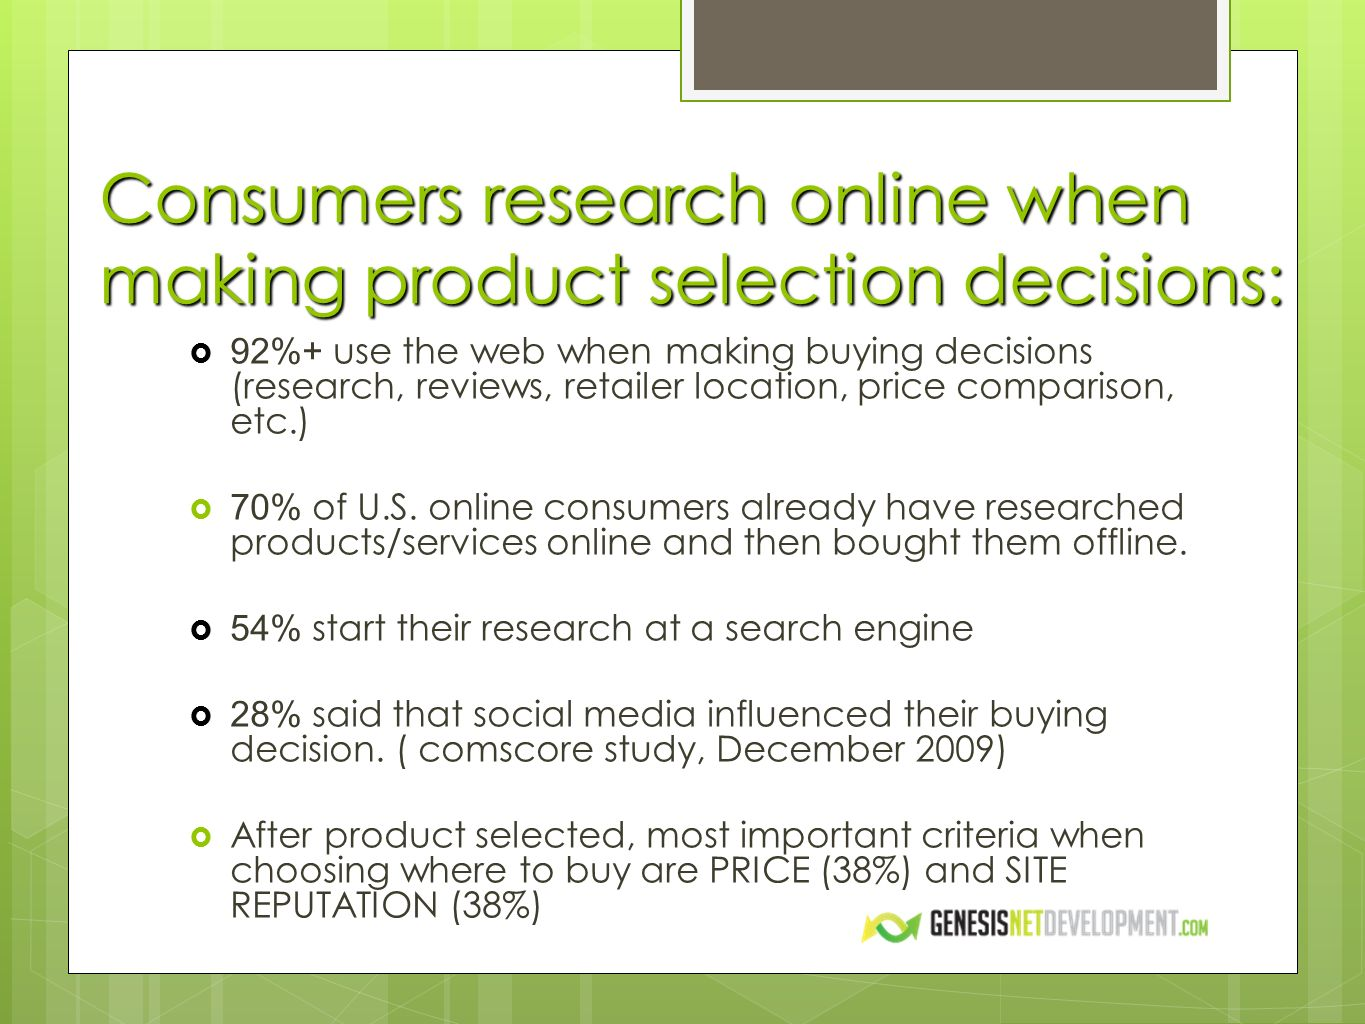 Consumers research online when making product selection decisions: 92%+ use the web when making buying decisions (research, reviews, retailer location